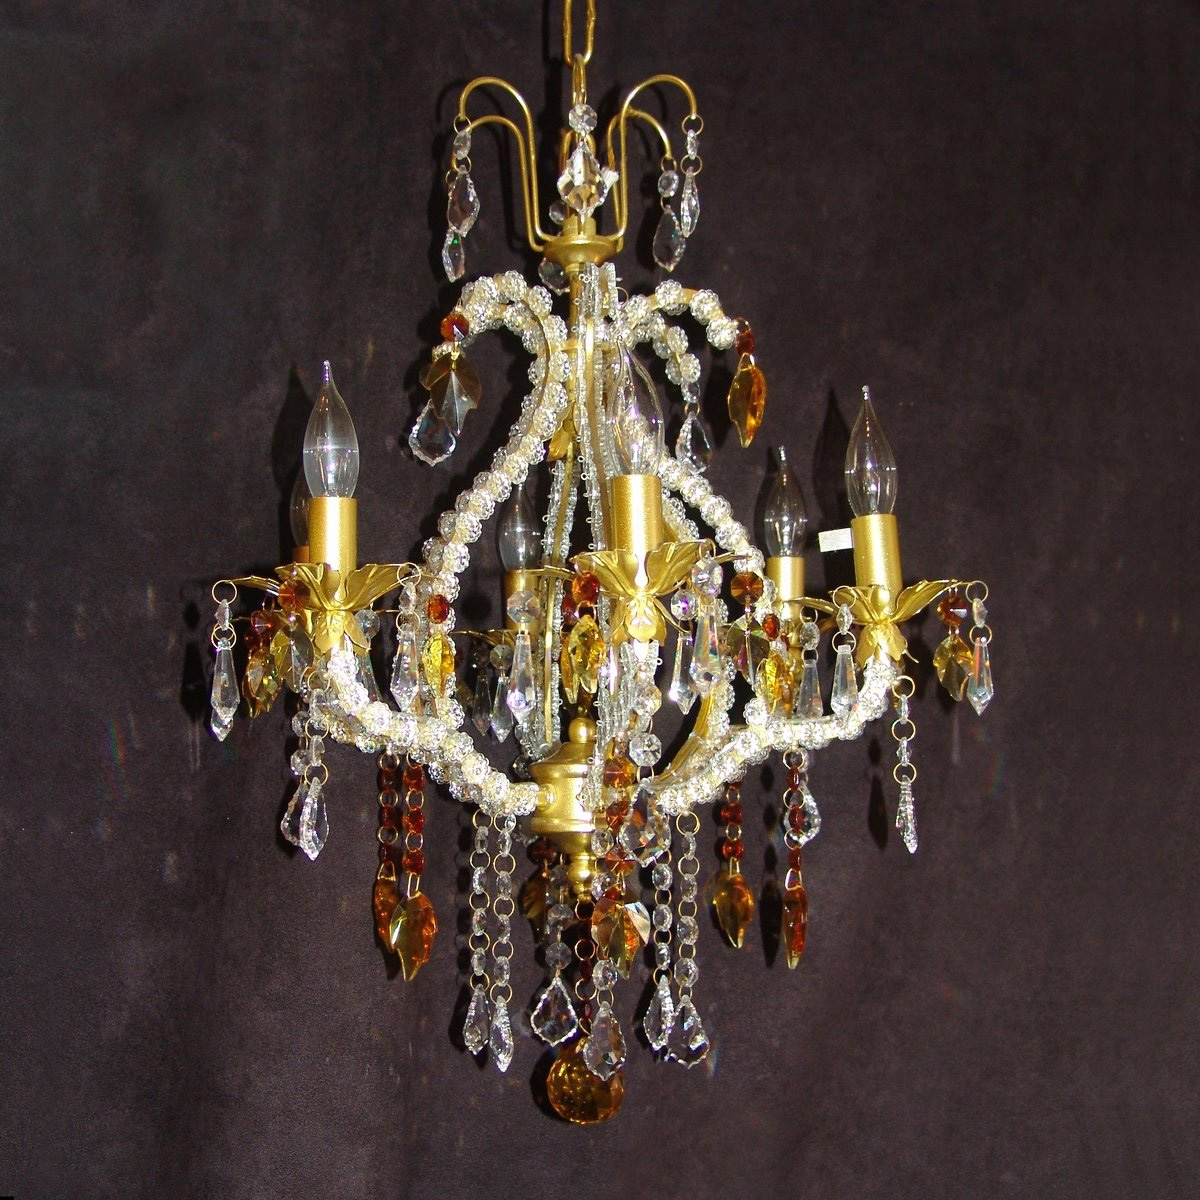 Gold Chandeliers For Bedrooms Chandeliers Bronze Chandelier Throughout Crystal Gold Chandeliers (Image 13 of 25)